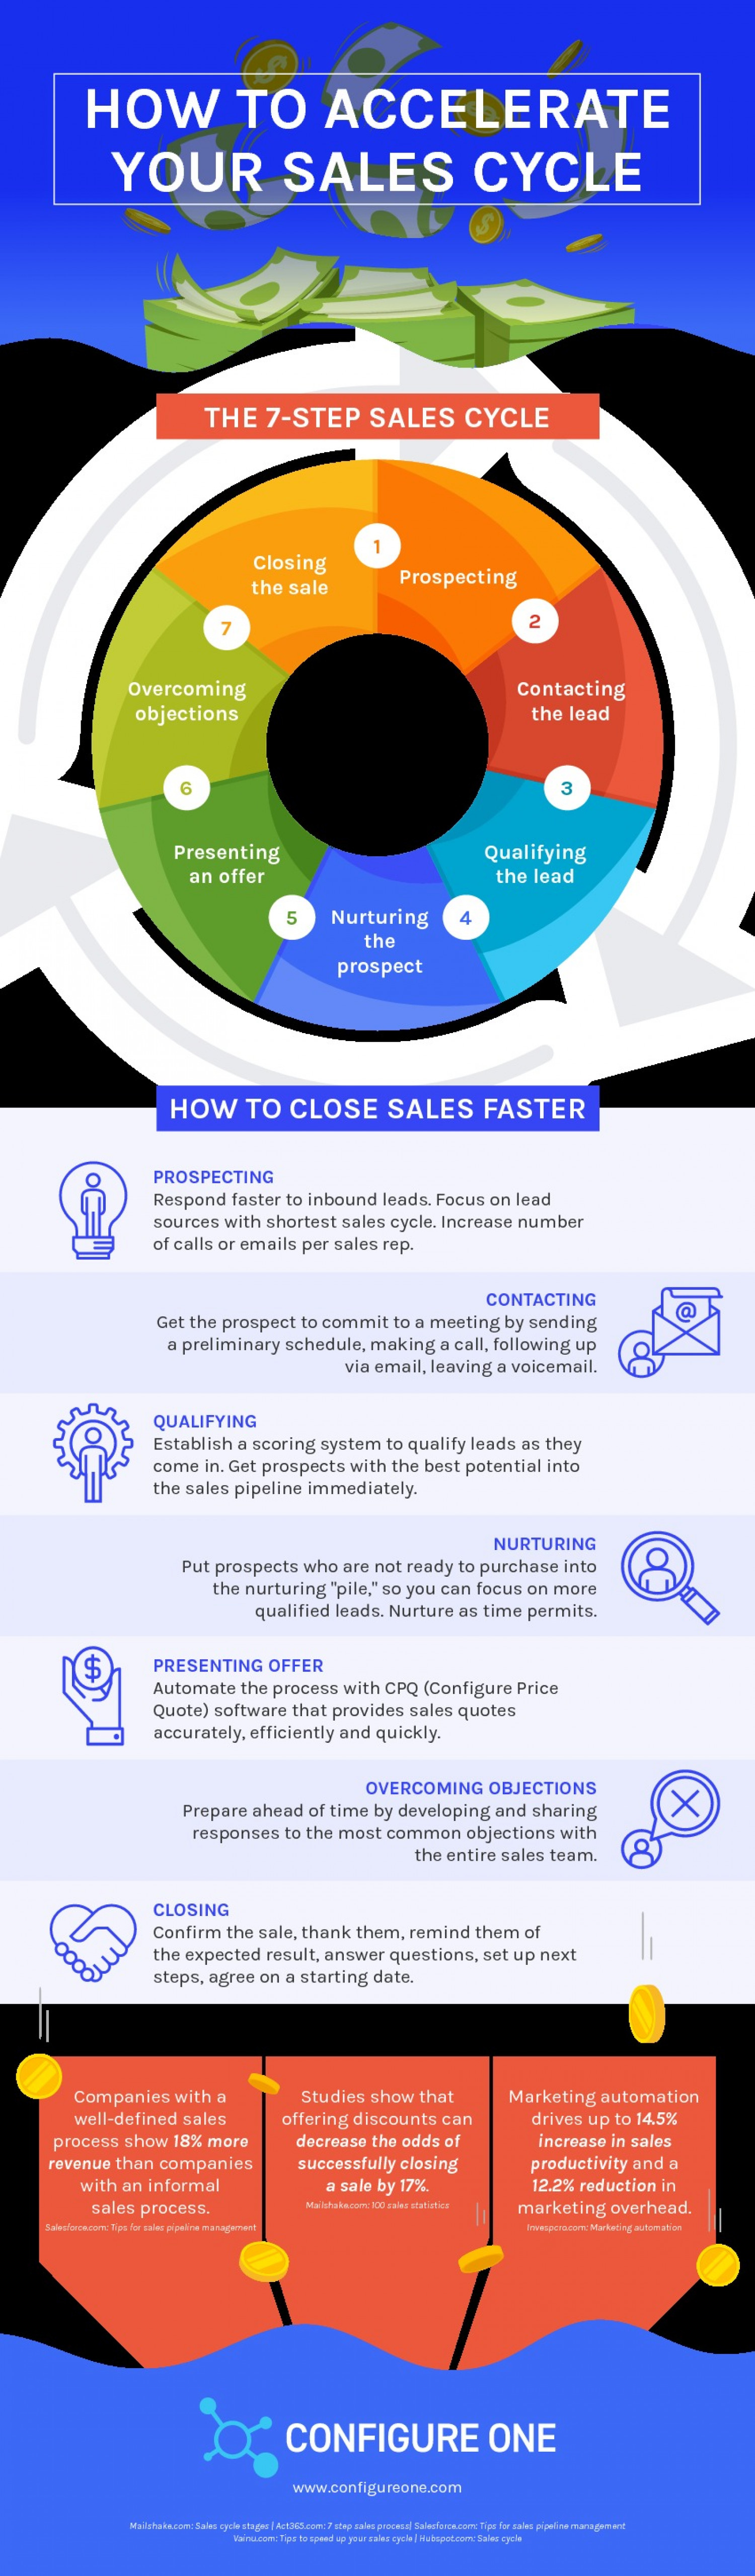 How to Accelerate Sales